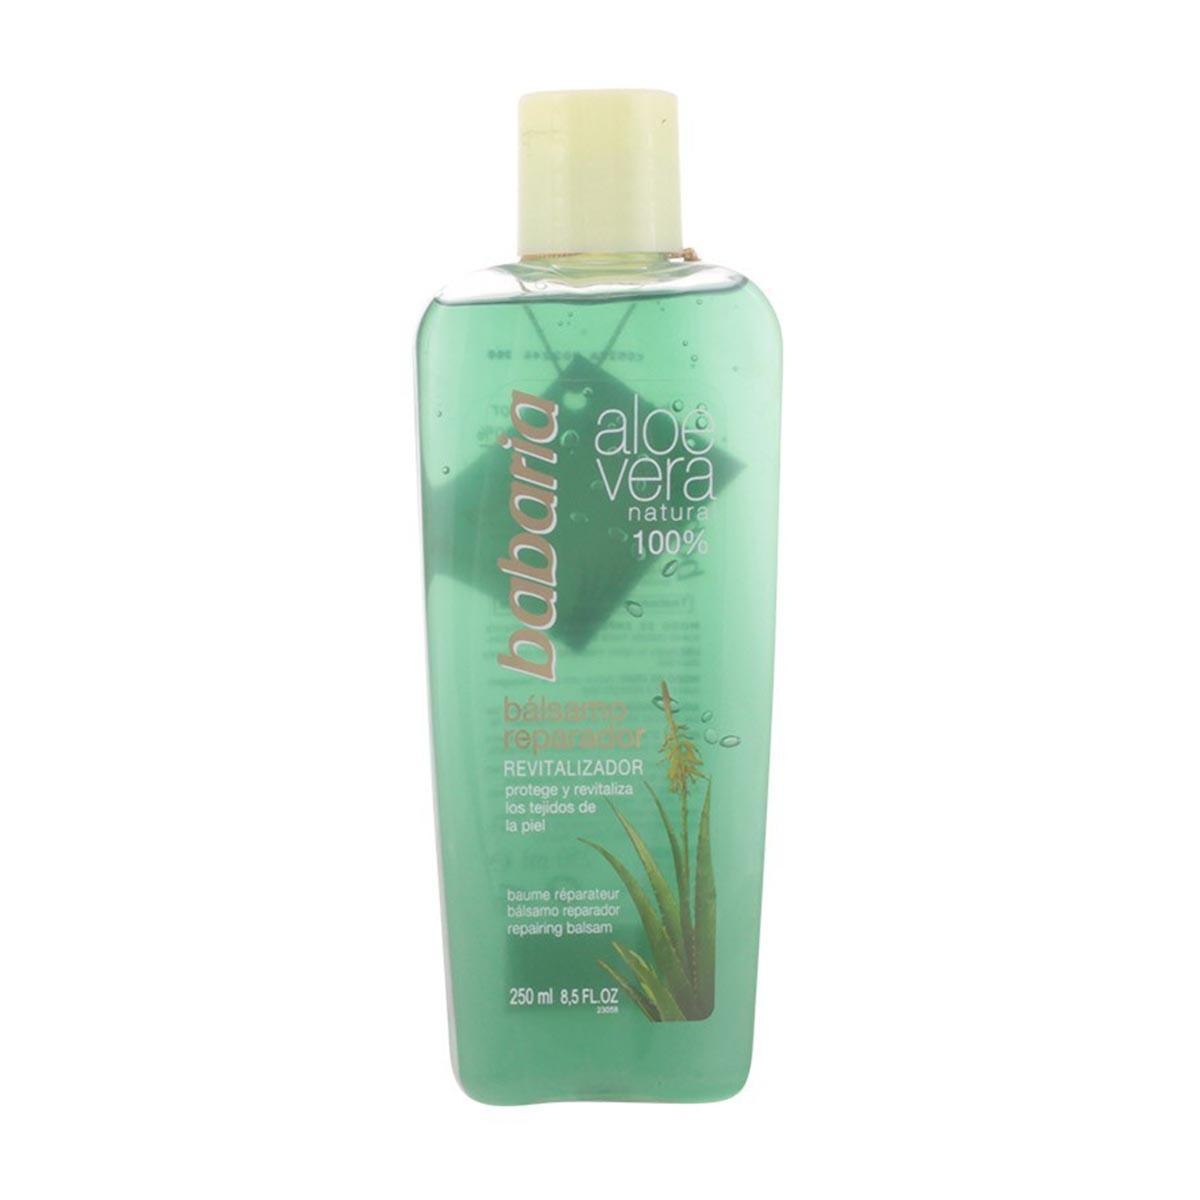 Babaria-fragrances Aloe Vera Natural Repairer Revitalizer Balm 250ml